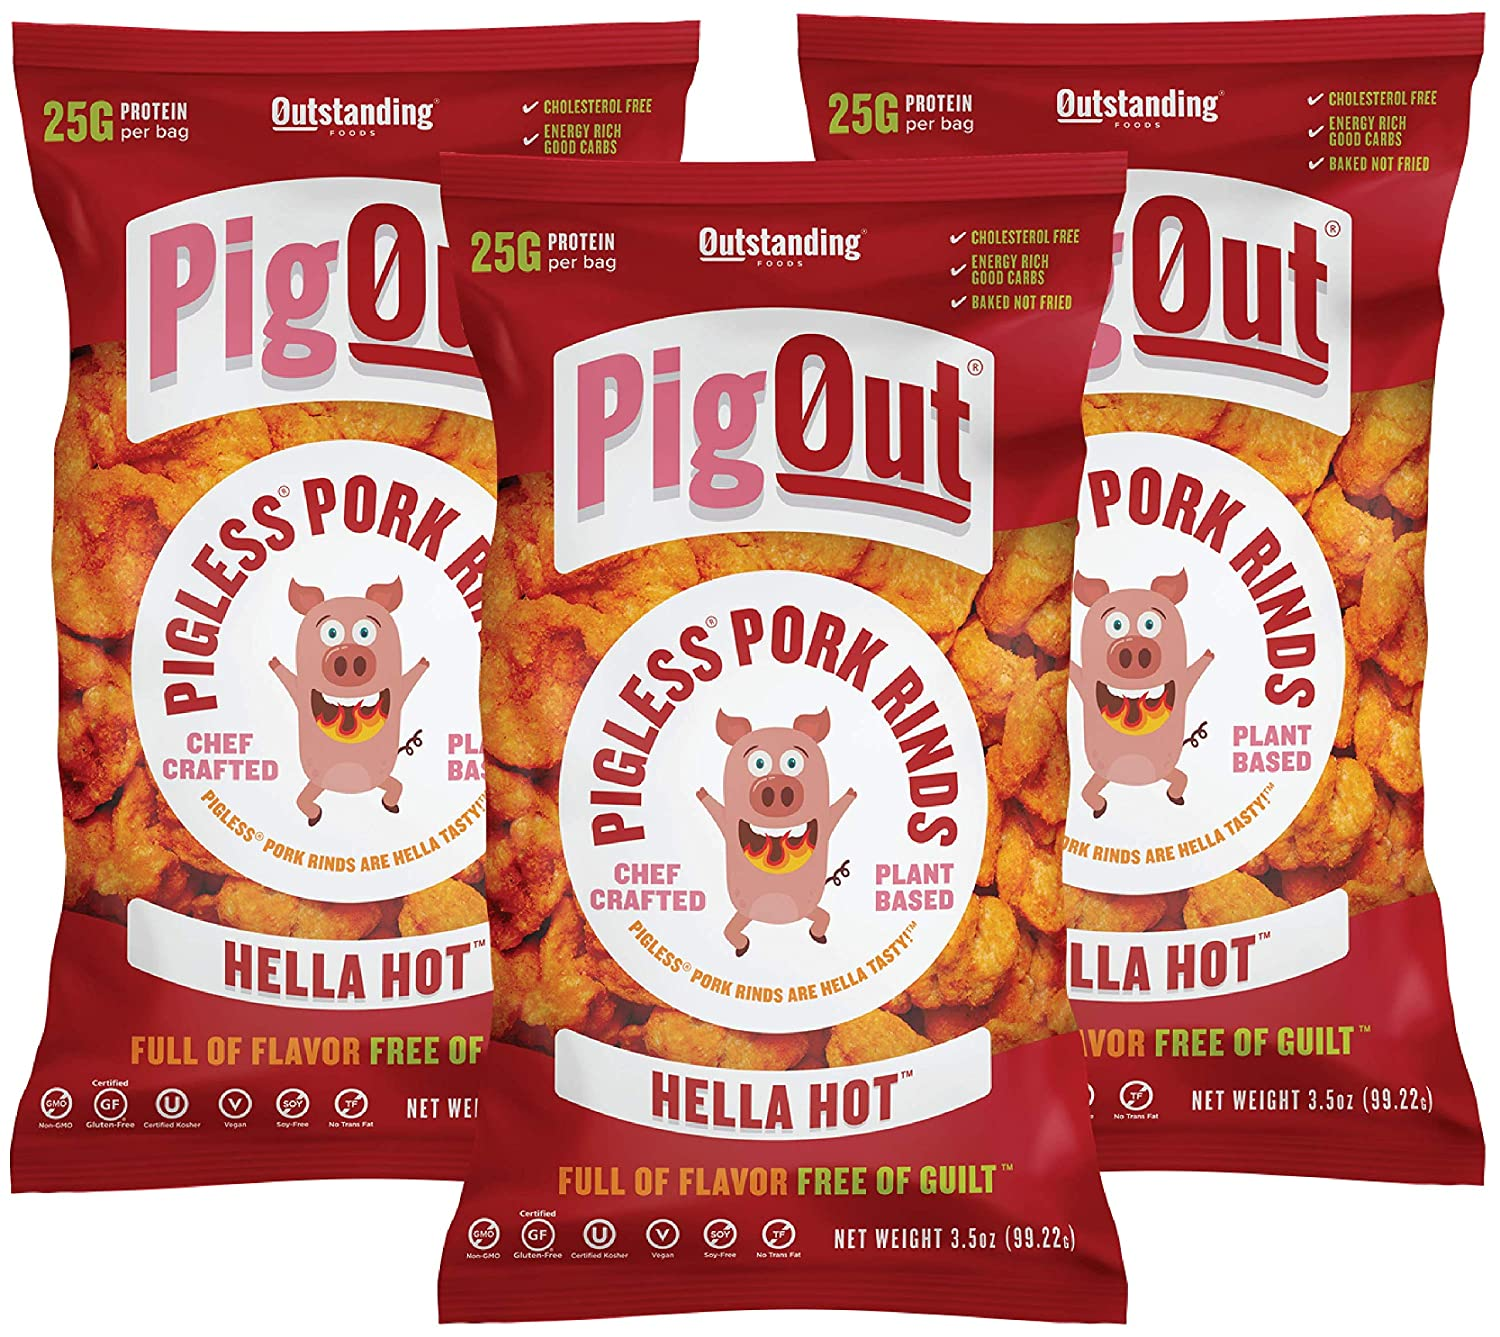 PigOut Pigless Pork Rinds, Hella Hot   Plant Based, High Protein, Low Calorie   Gluten Free, Kosher, Non-GMO   3.5oz, 3 Pack